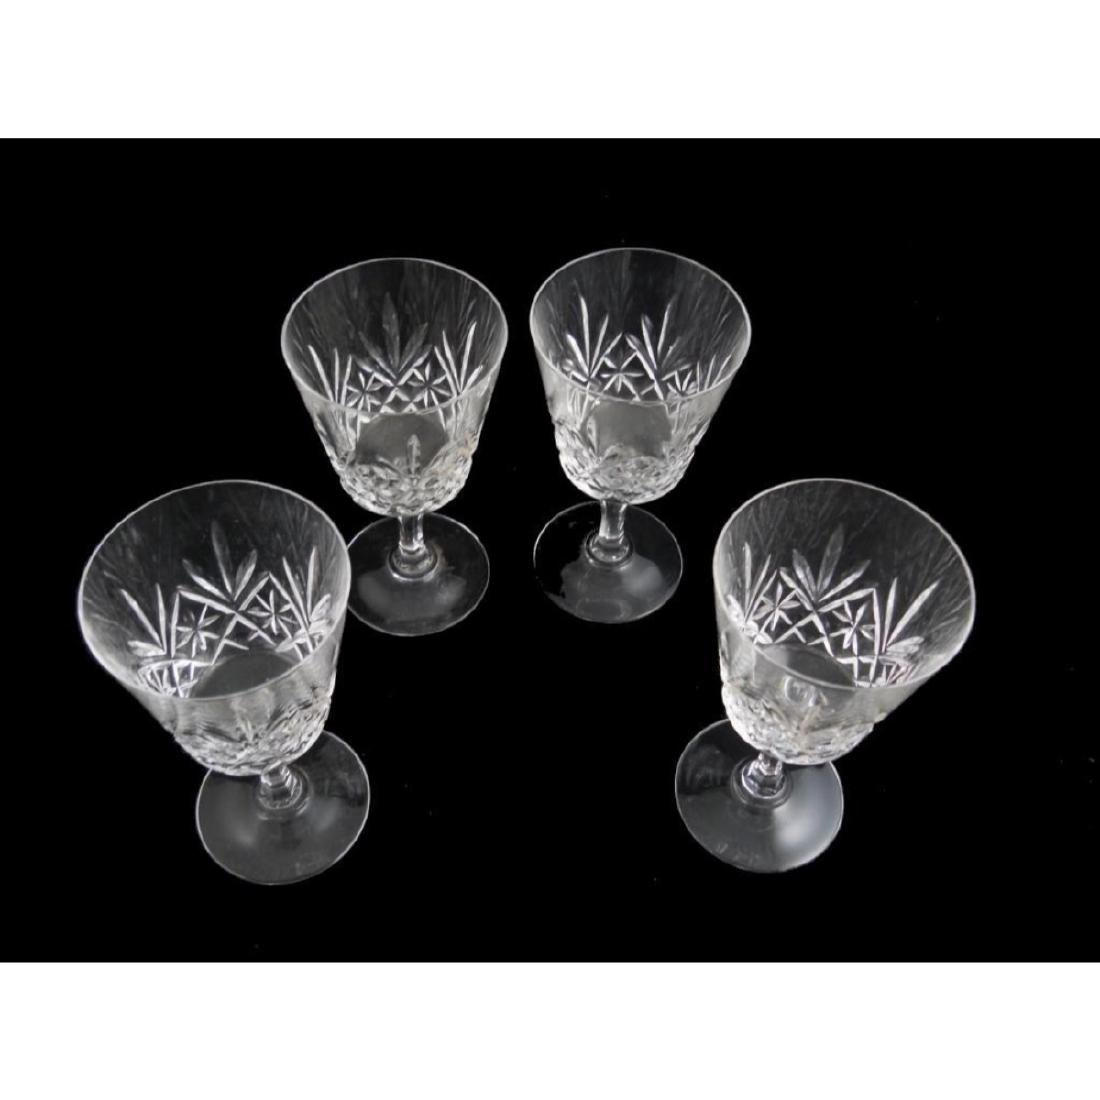 Pineapple Design Cut Crystal Goblets Set - 2